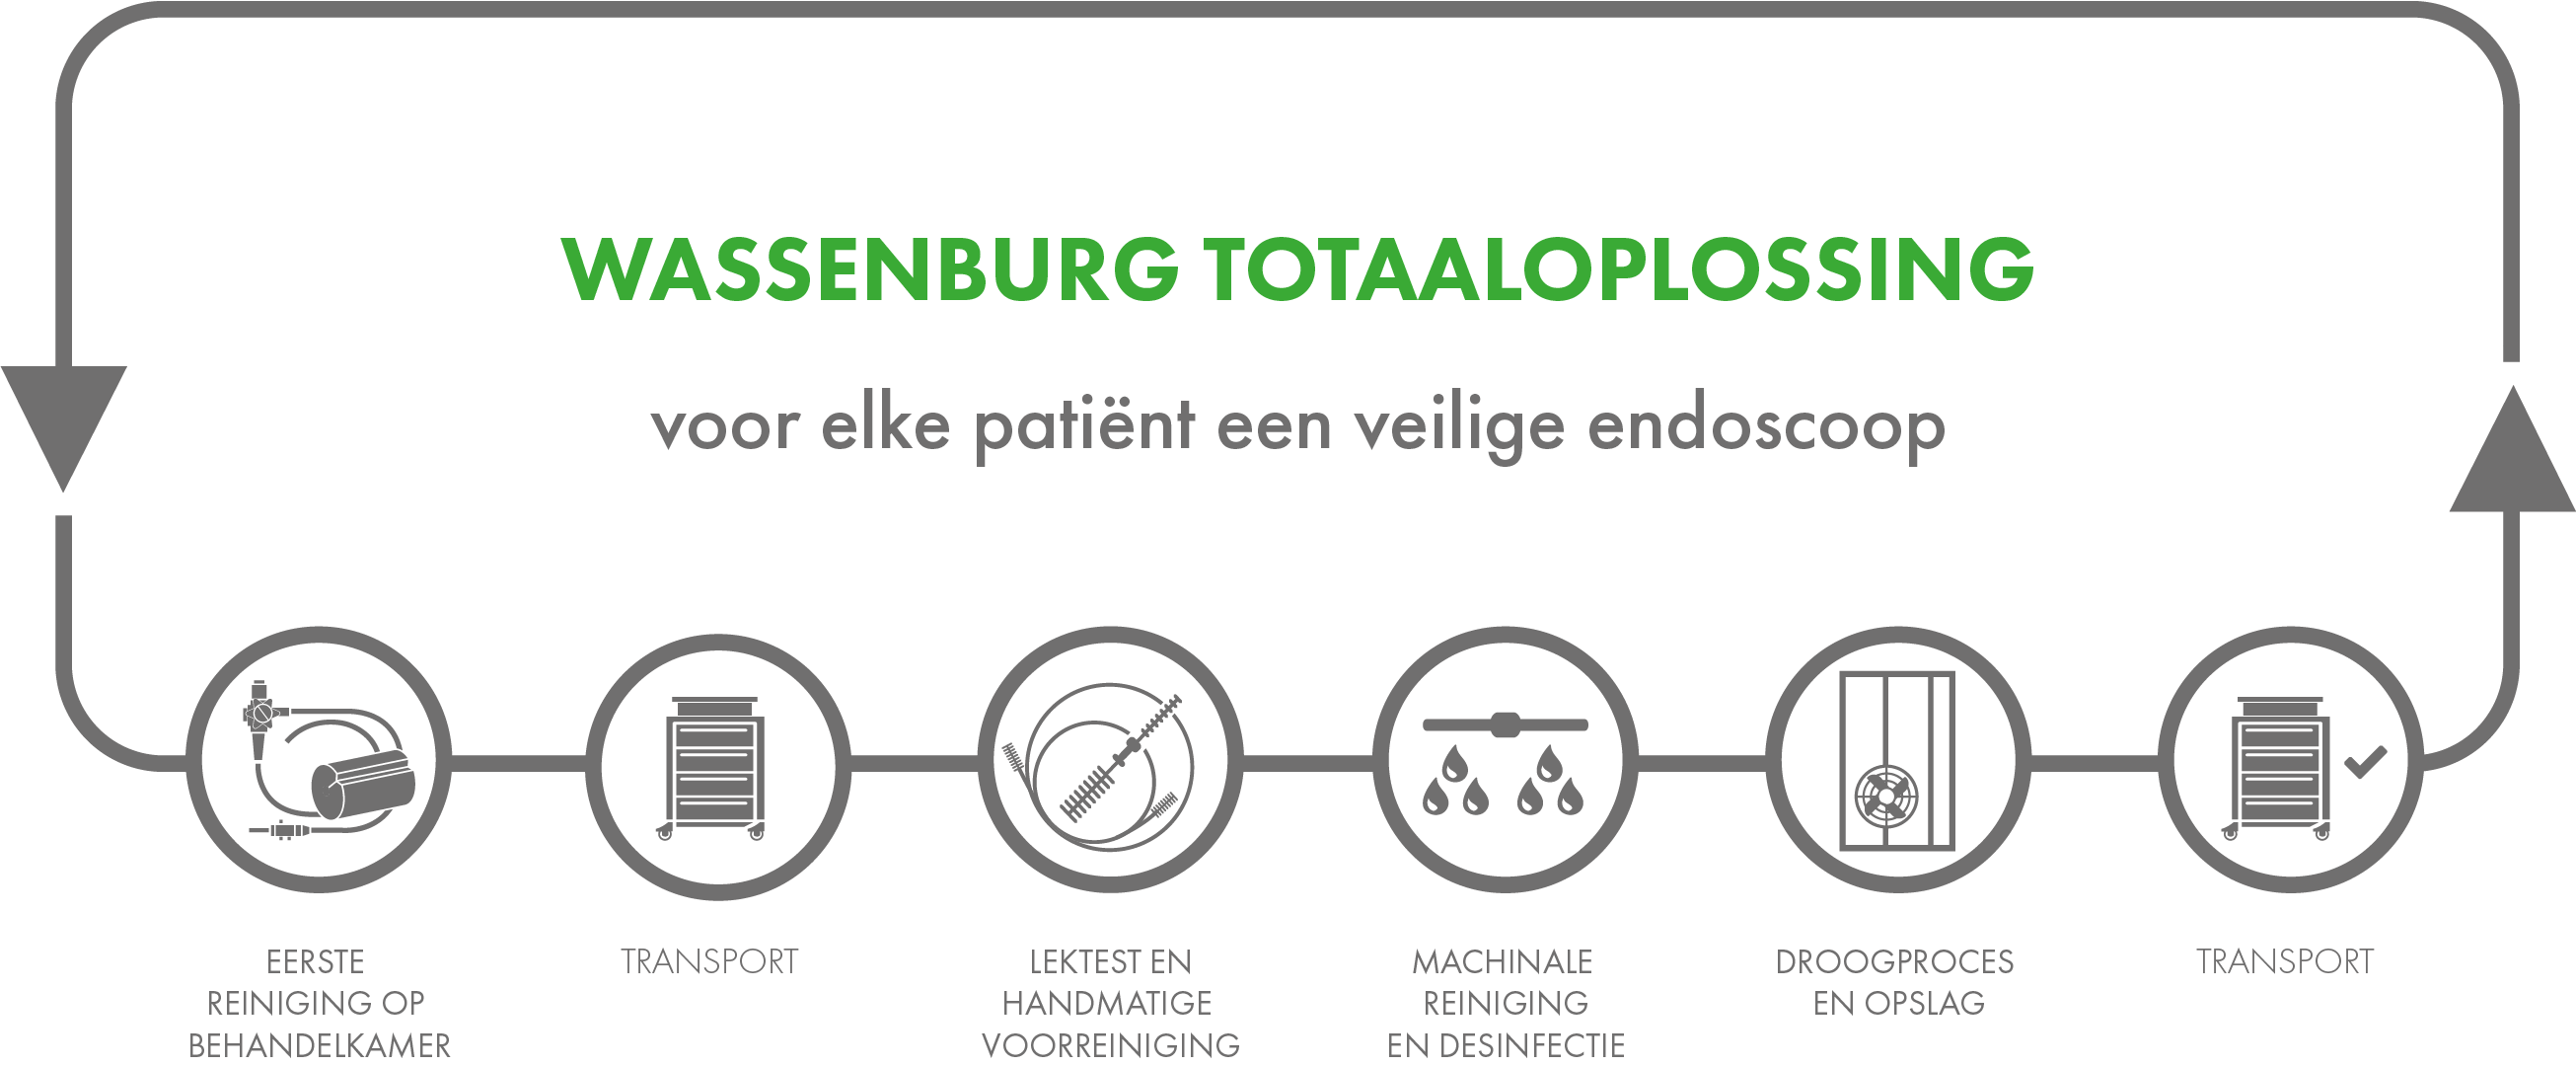 //www.wassenburgmedical.com/be/wp-content/uploads/sites/7/2018/07/Wassenburg-Total-Solution-NL.png